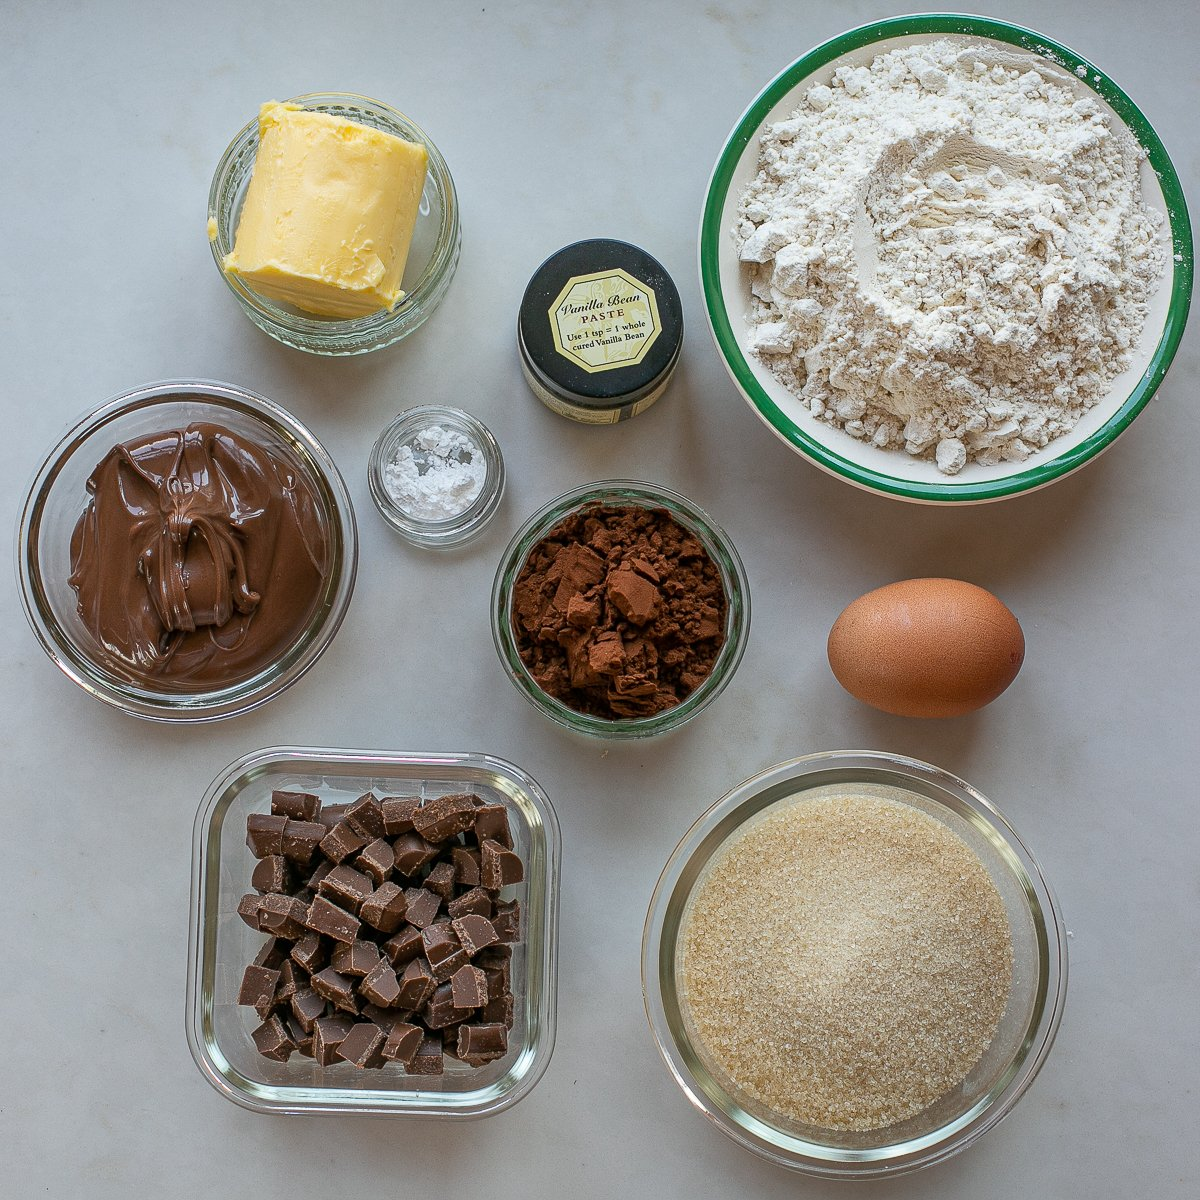 all the ingredients needed to make Double chocolate nutella cookies